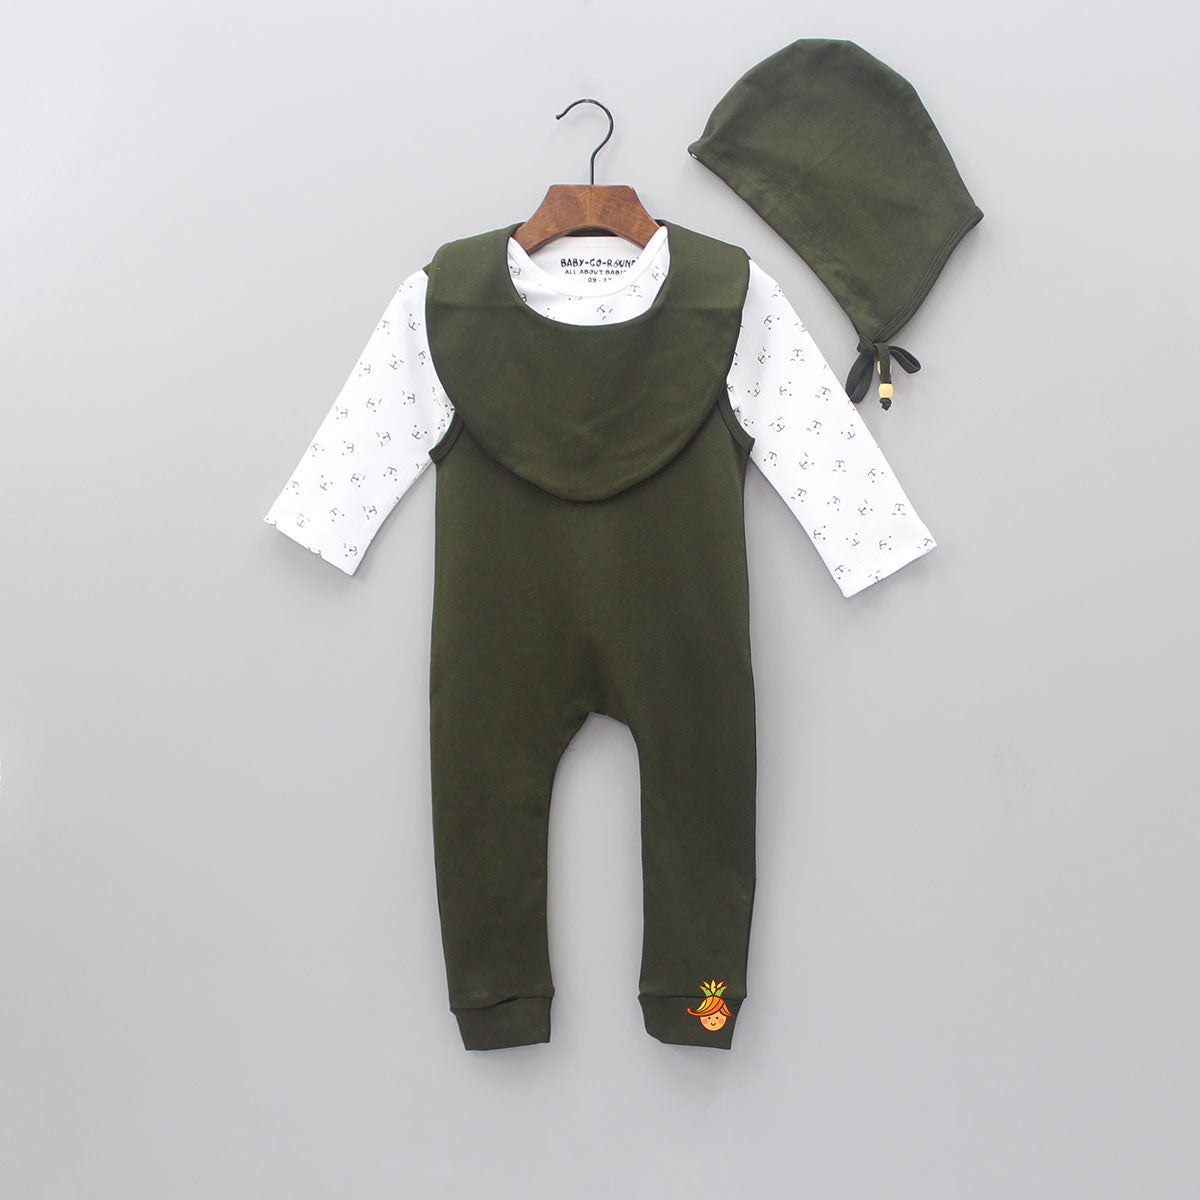 Organic Printed Top And Dungaree Set With Cap And Bib